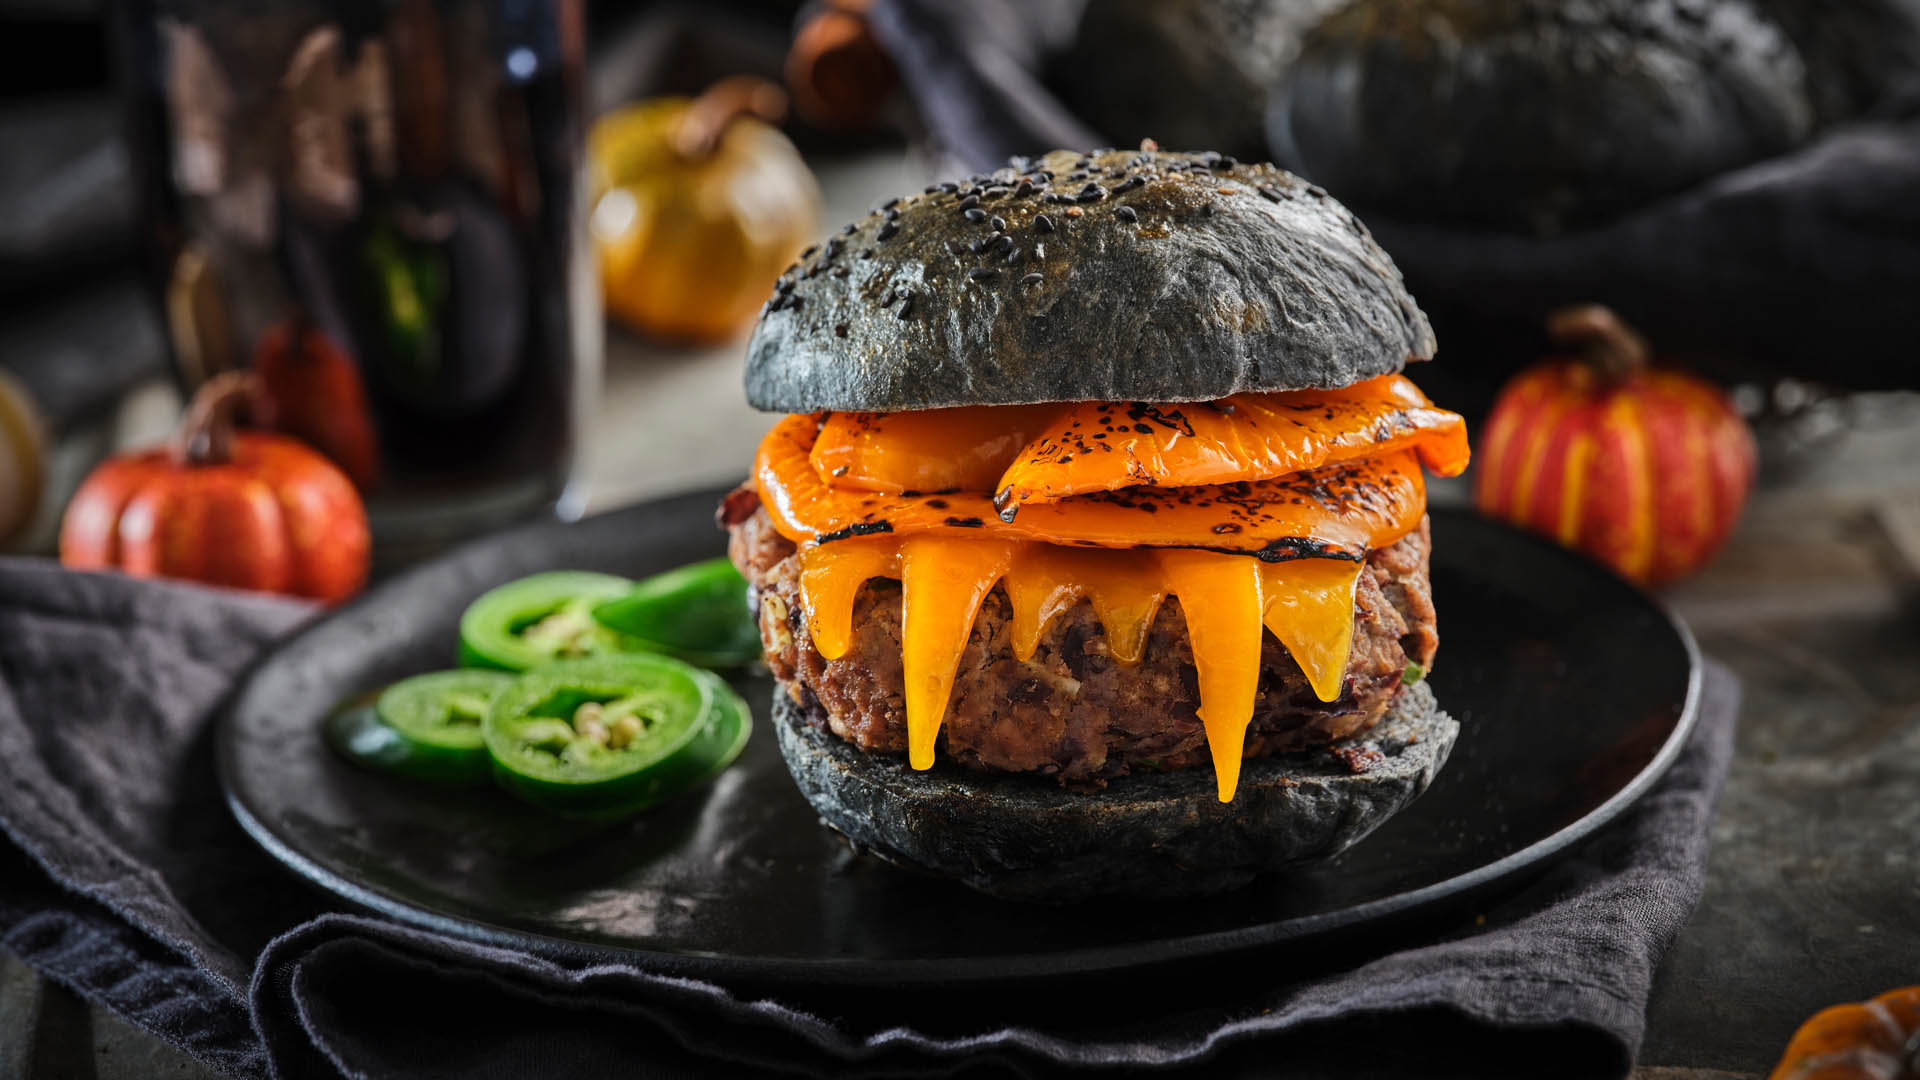 Burger with black buns, orange pepper, and melted cheddar cheese on a black plate beside a small collection of jalapeños.